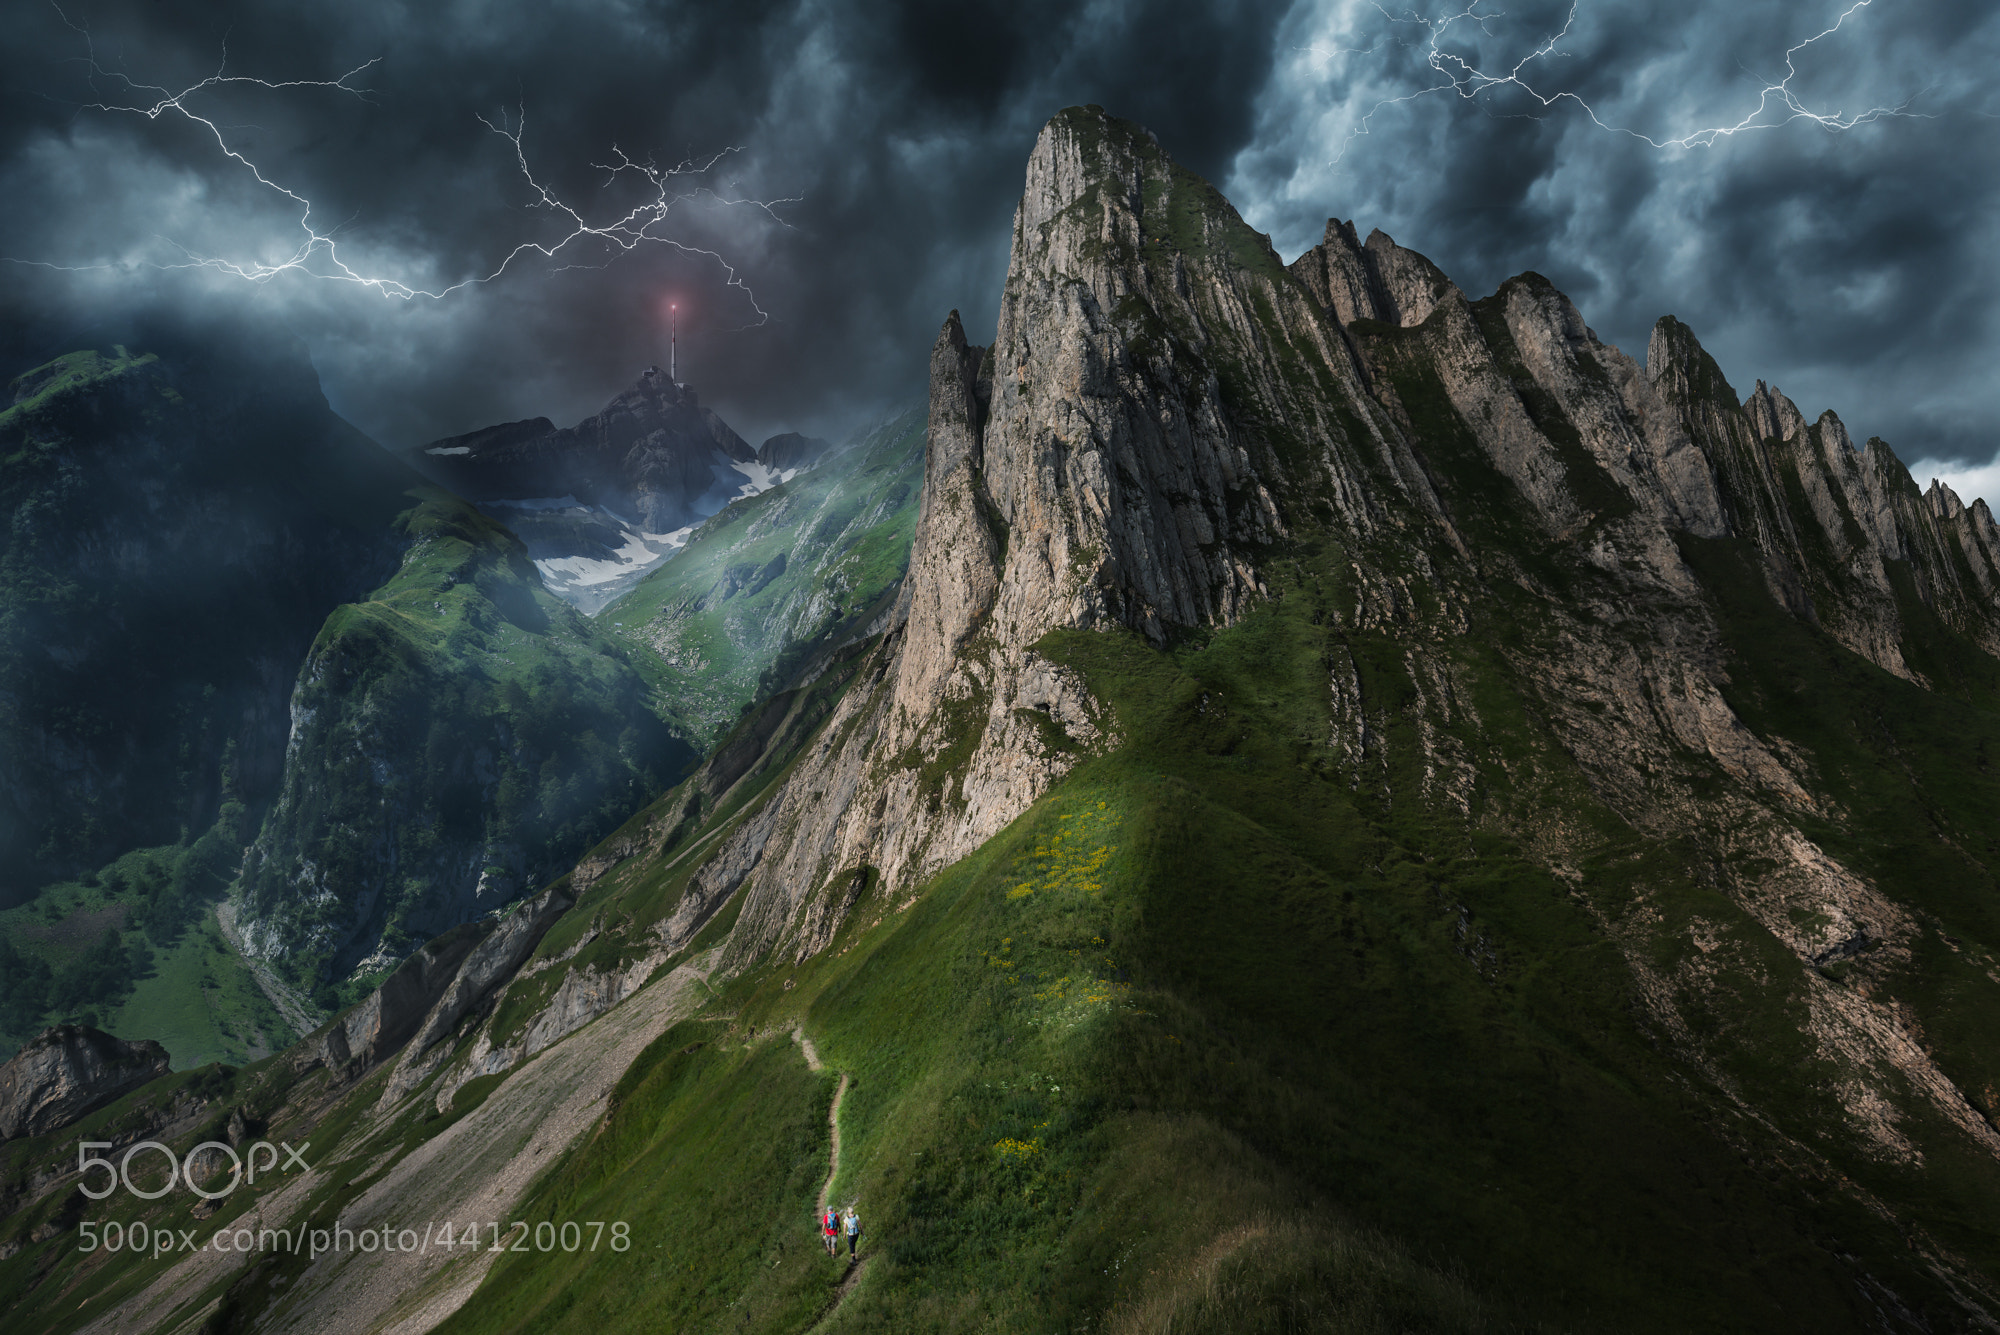 Photograph The dangerous hike by John Wilhelm on 500px